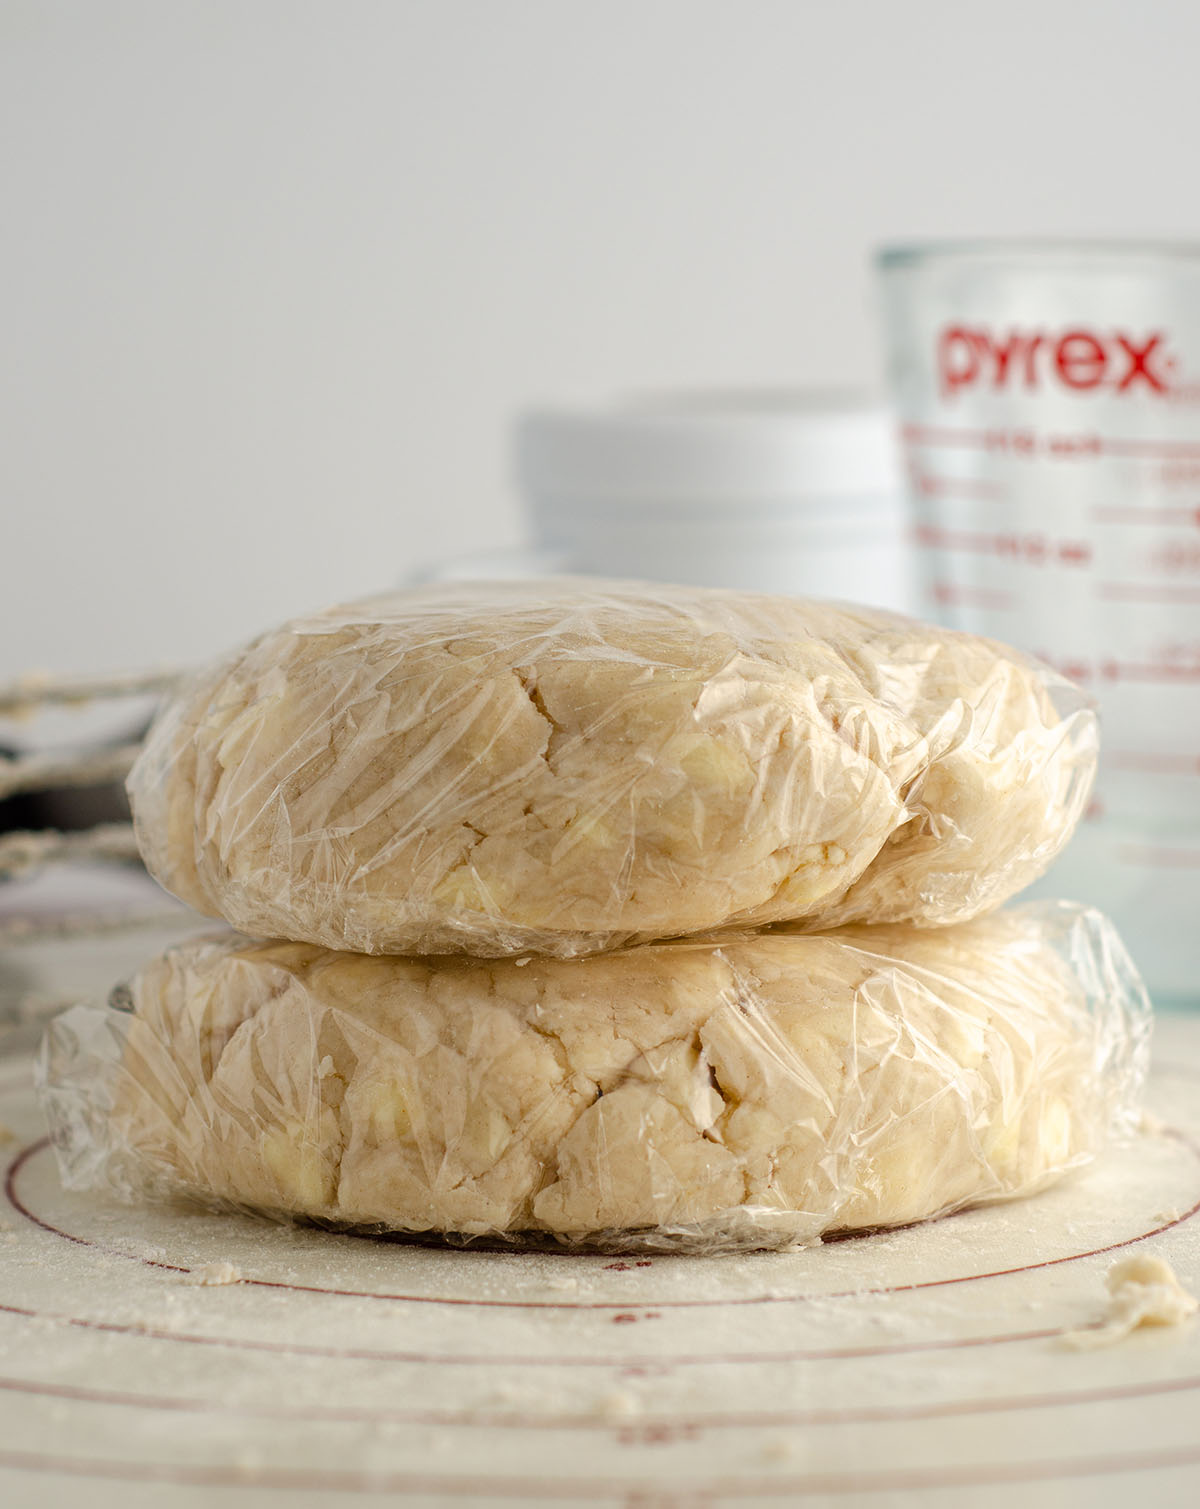 two discs of pie dough wrapped in plastic wrap ready to chill